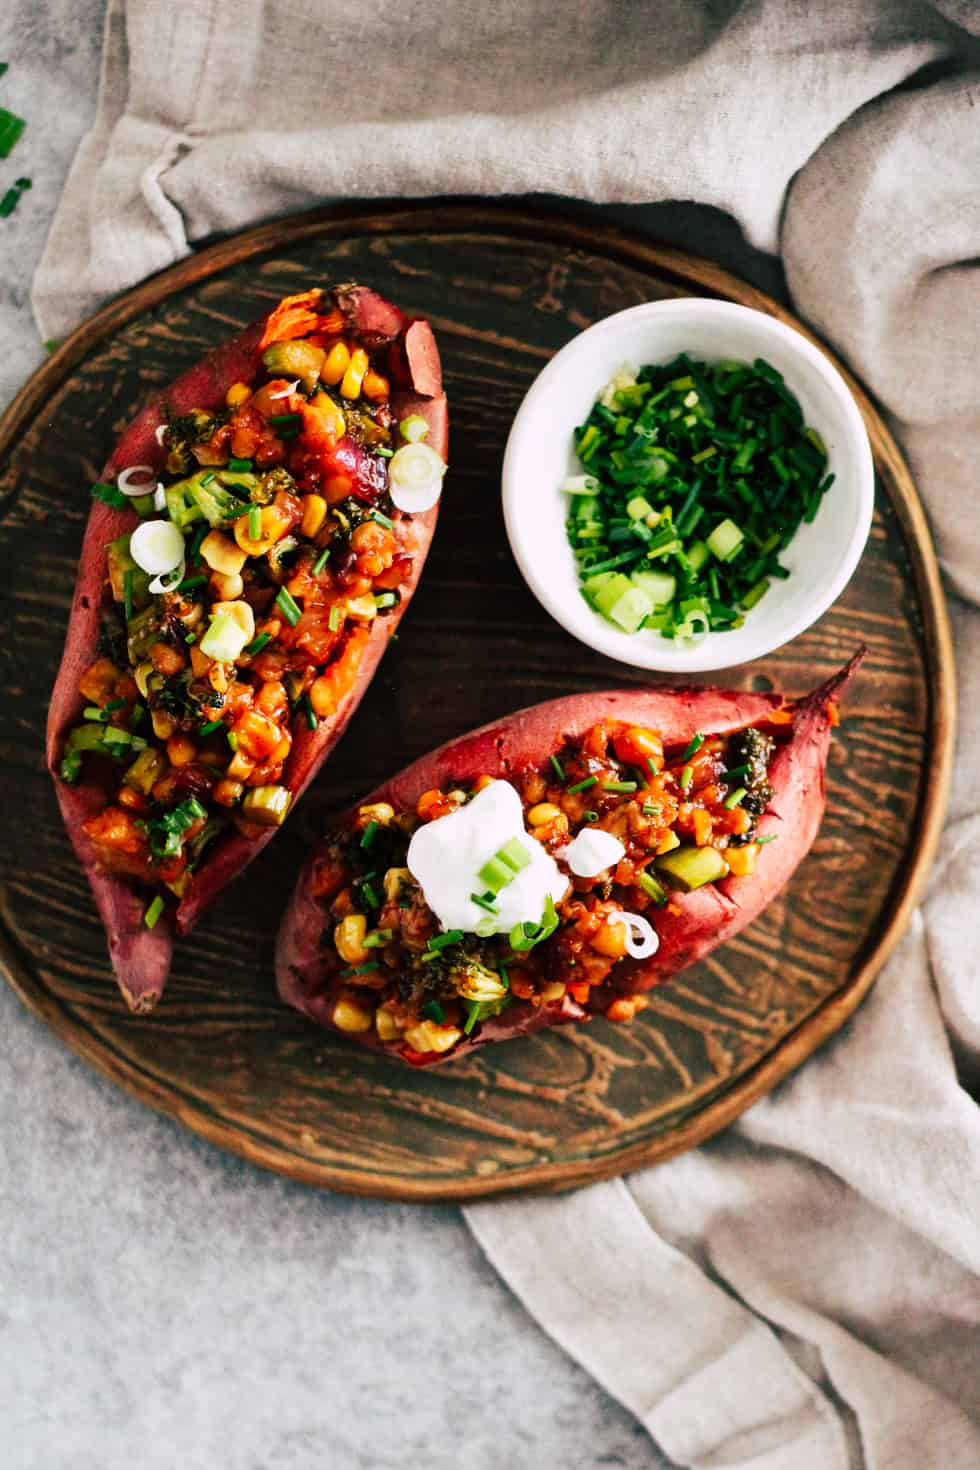 Stuffed sweet potatoes on wood plate with small bowl of chives and green onion.